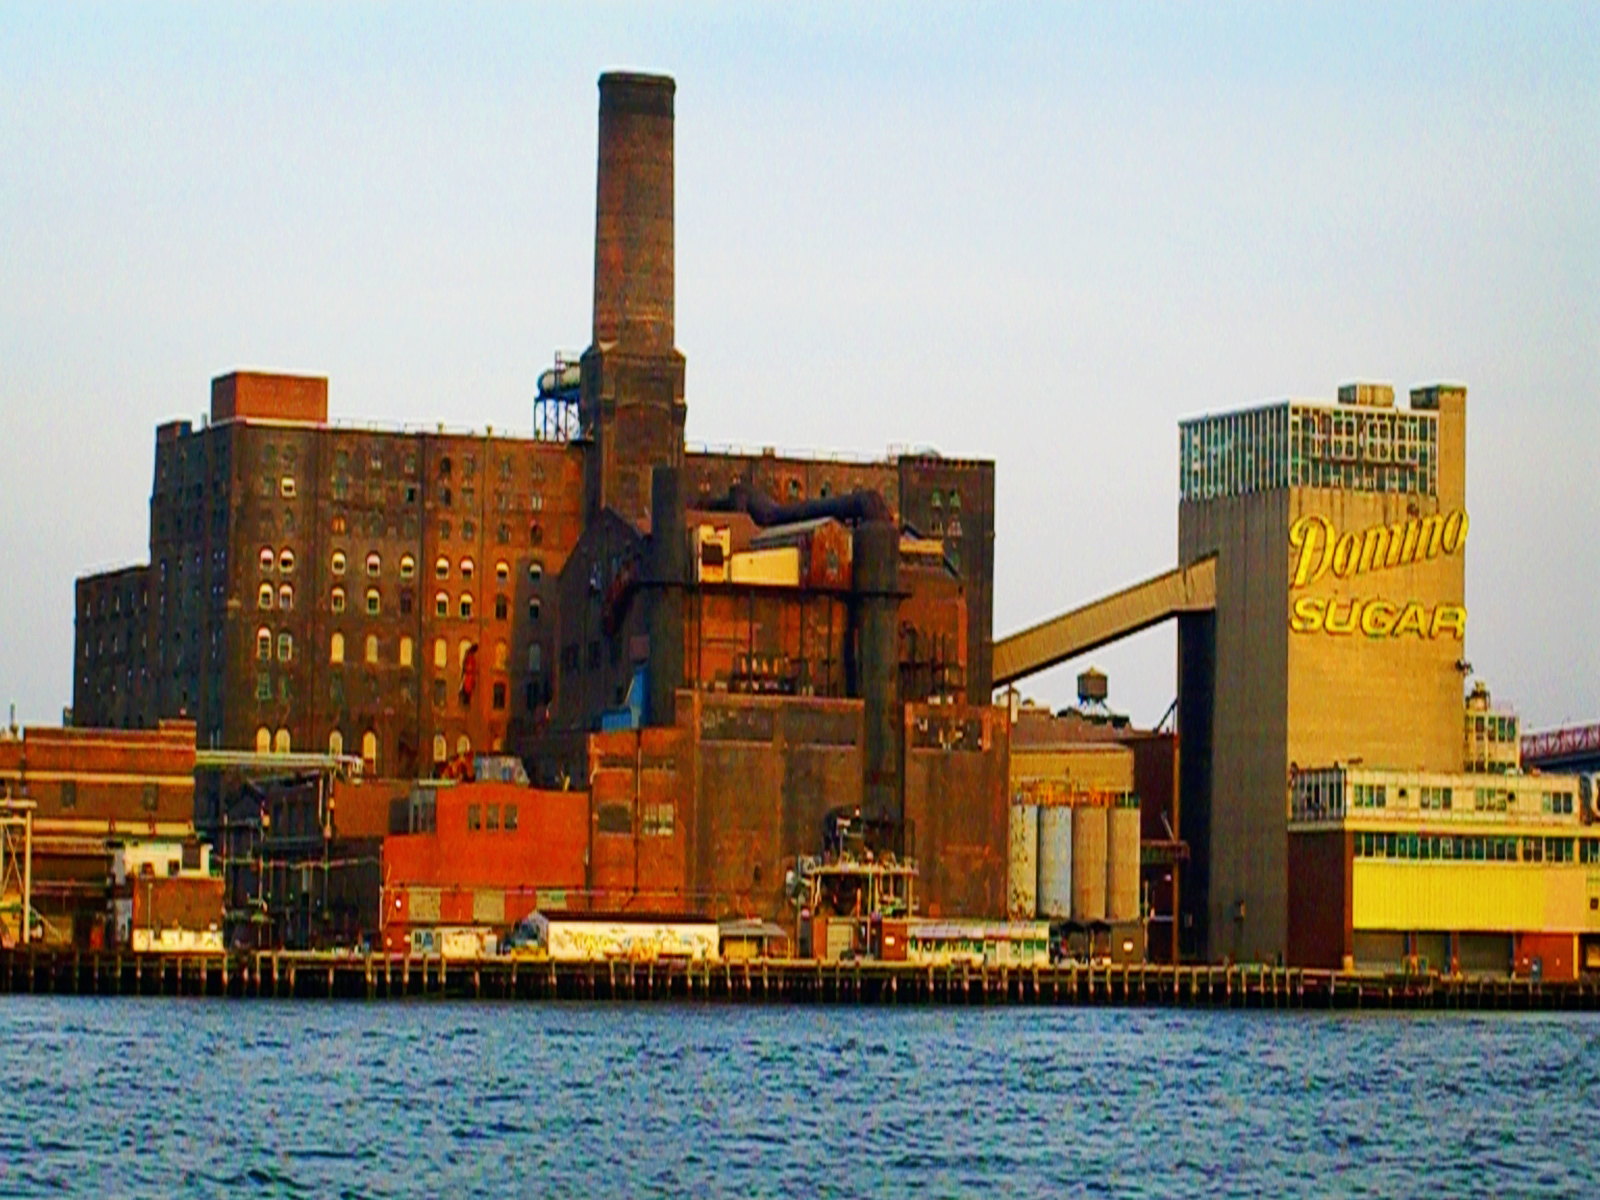 Domino Sugar Parent Company to pay $13.4 million over Sexual Harassment Lawsuit